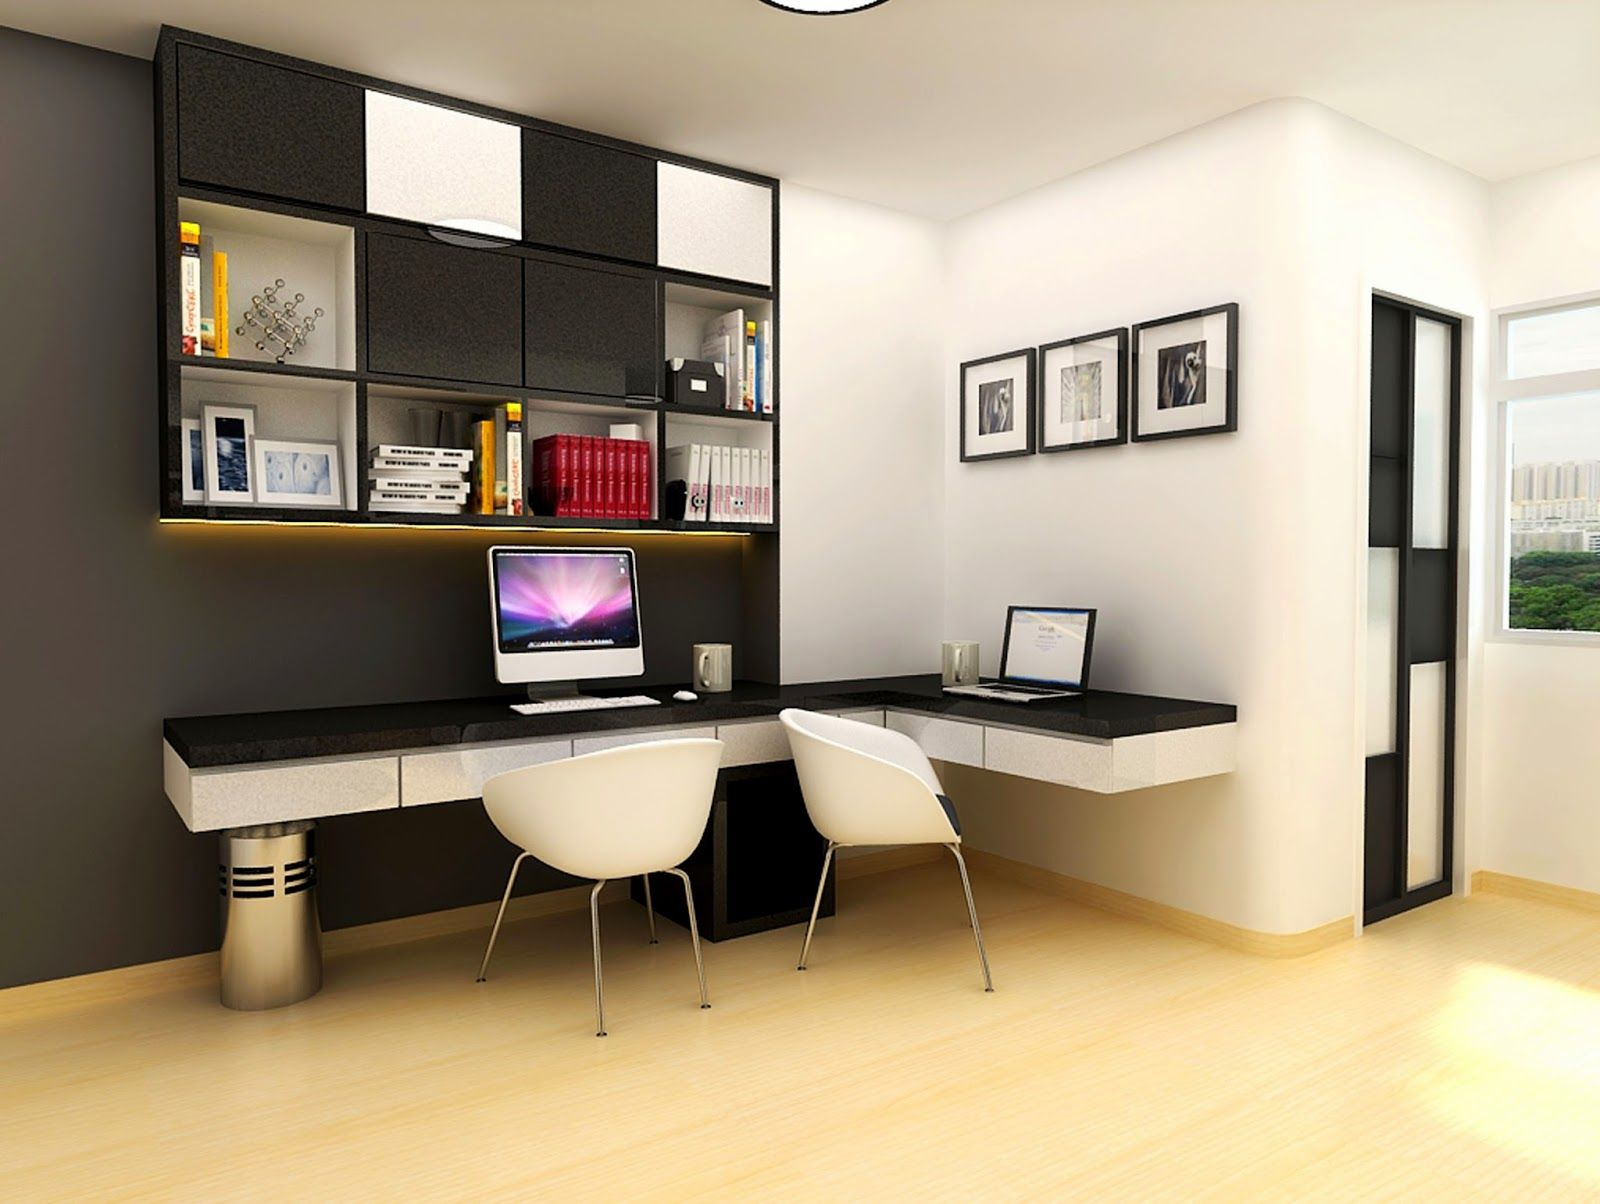 Homework spaces and study room ideas you ll love study - Small study room ideas ...